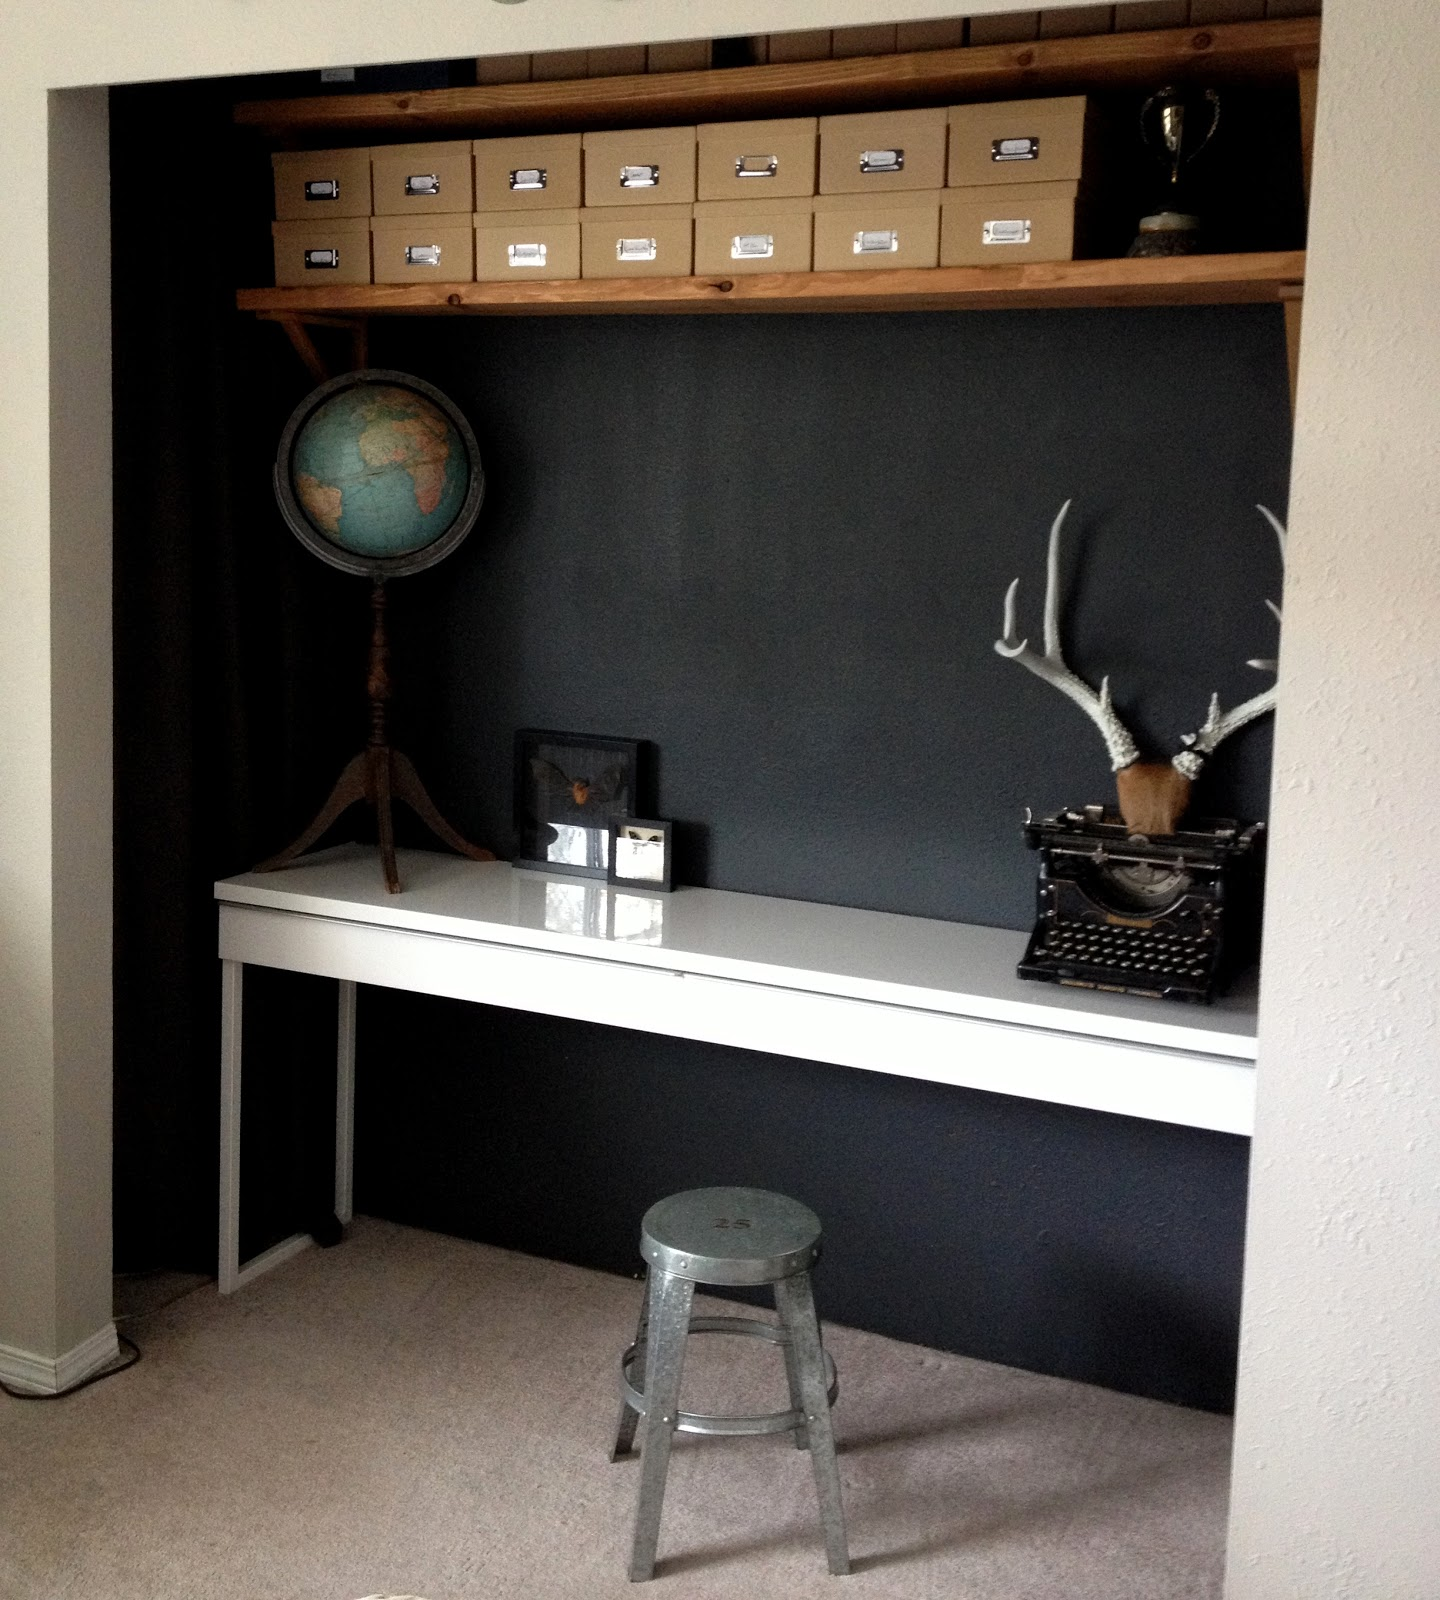 The Desk Is From Ikea But I Was Able To Find It On Craigslist For Half The  Price. I Also Found These Great Curtains At Ikea That Matched The Wall  Color ...